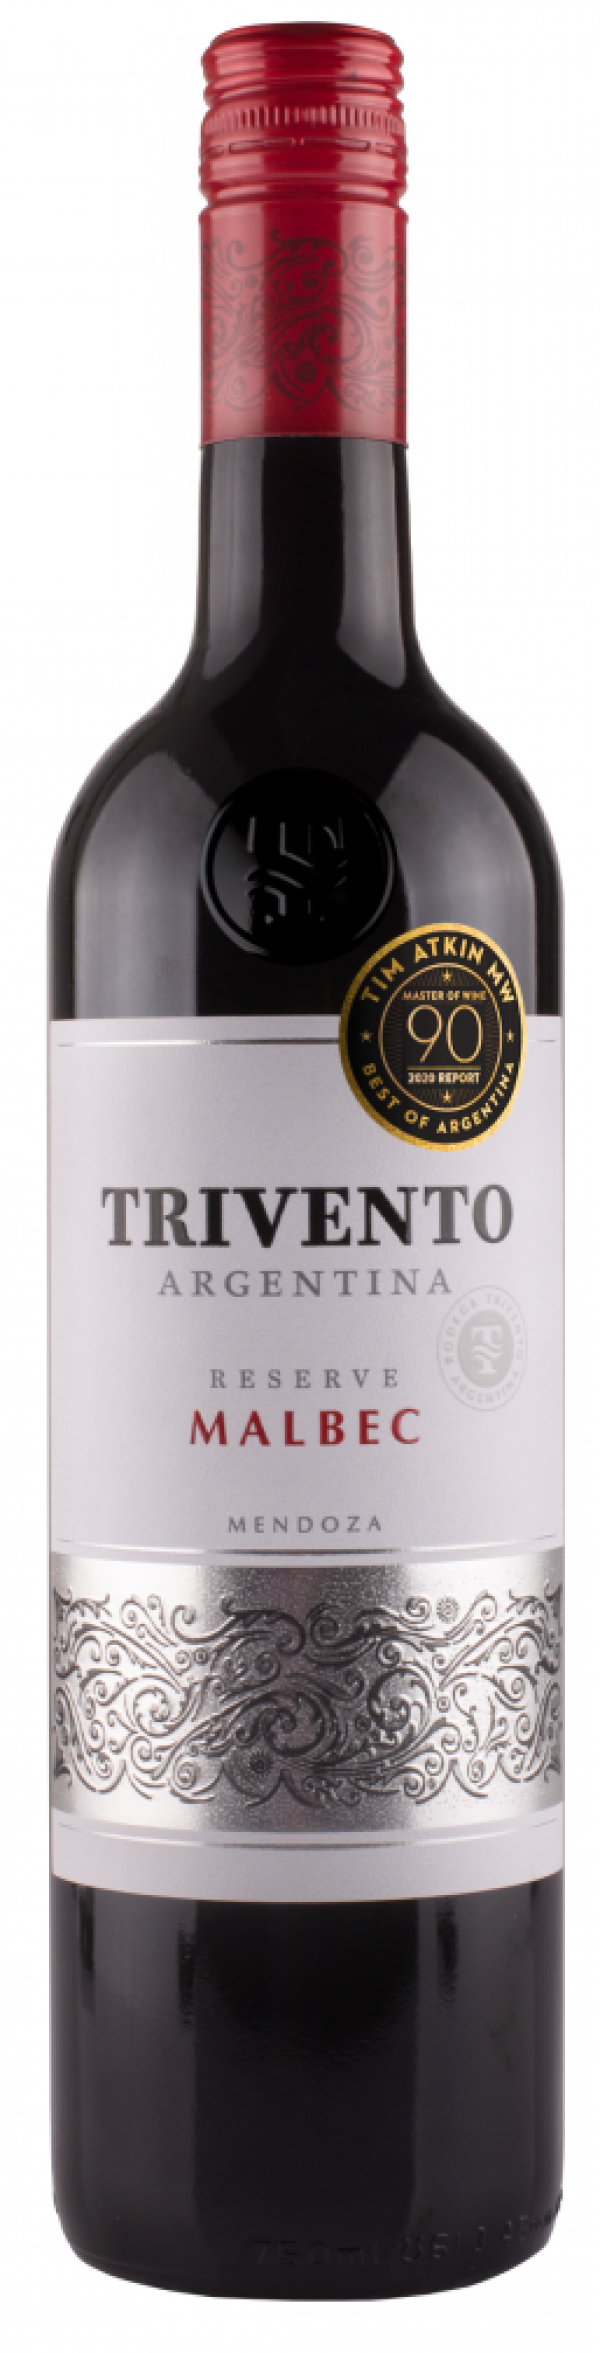 Trivento bags top red wine sku spot as it enters top 10 for first time